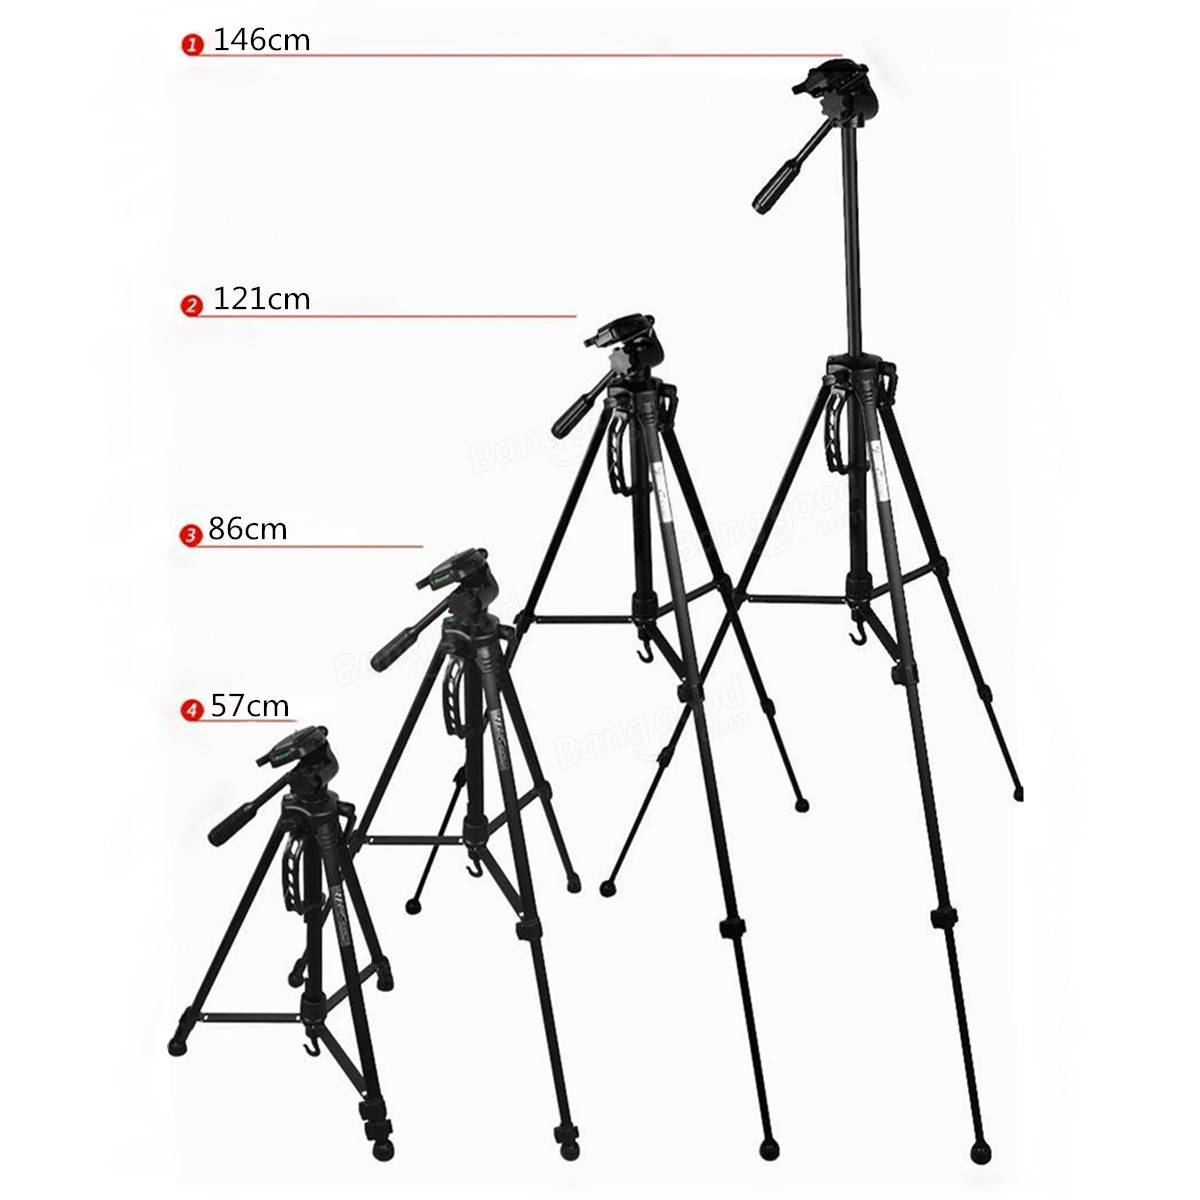 1200x1200 Weifeng Wt 3530 Tripod Stand With Carry Case For Digital Camera